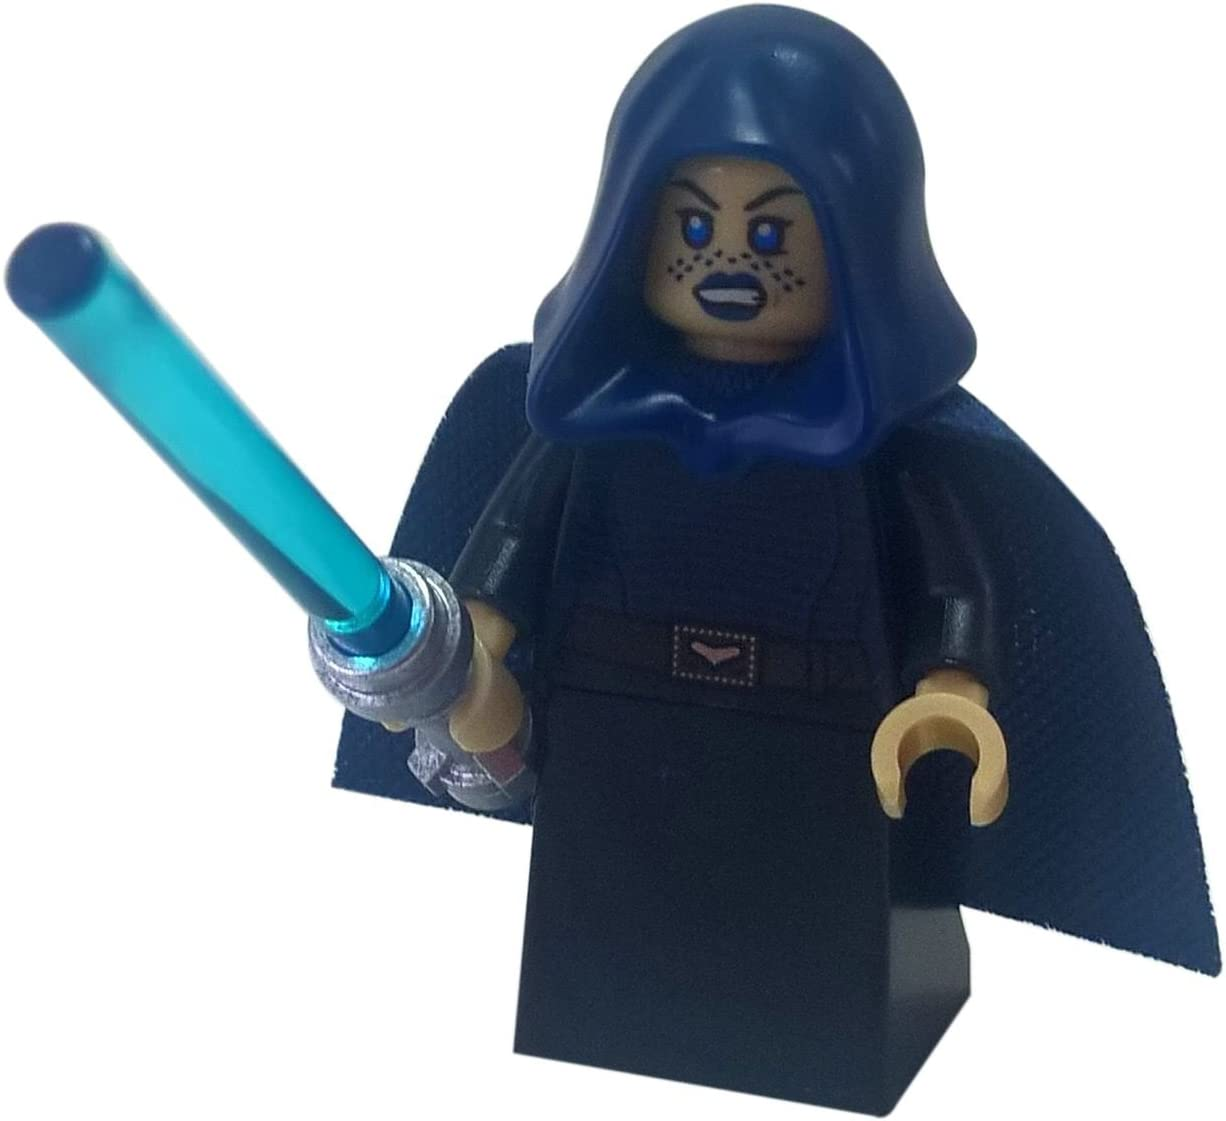 Barriss Offee minifigure from set 75206 Lego Star Wars